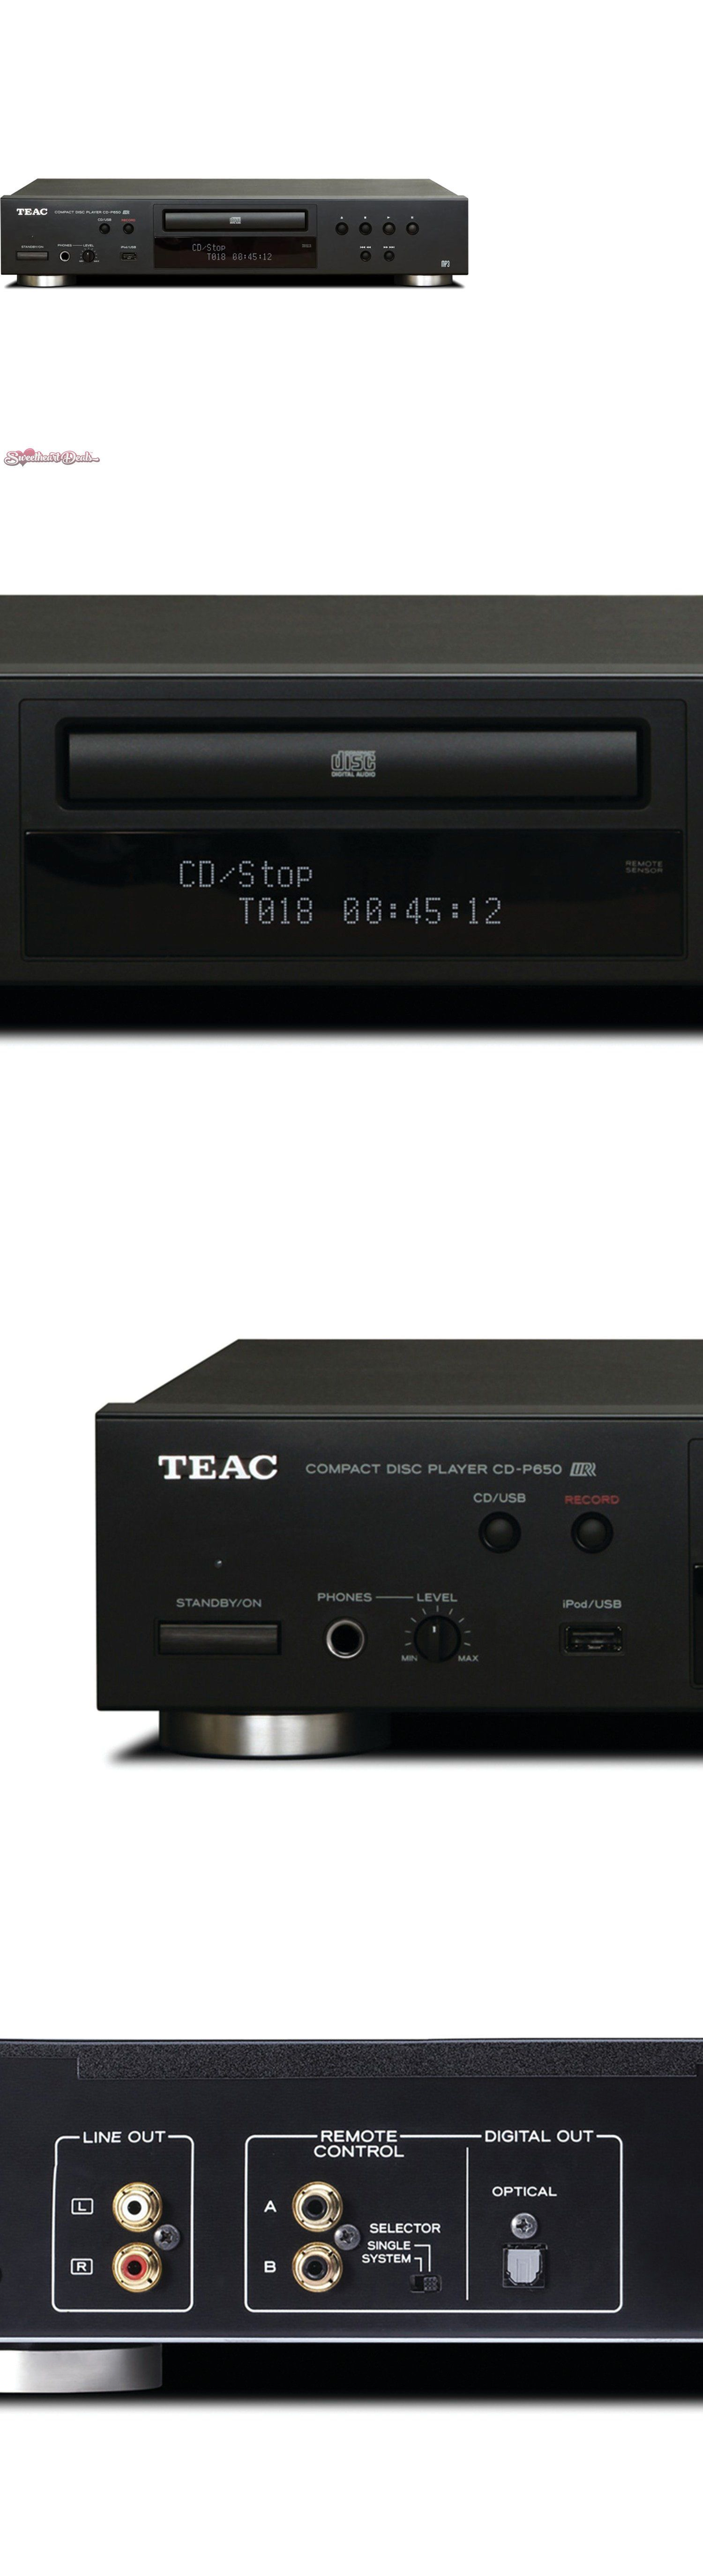 Teac CD-P650-B Compact Disc Player with USB and iPod Digital Interface Black